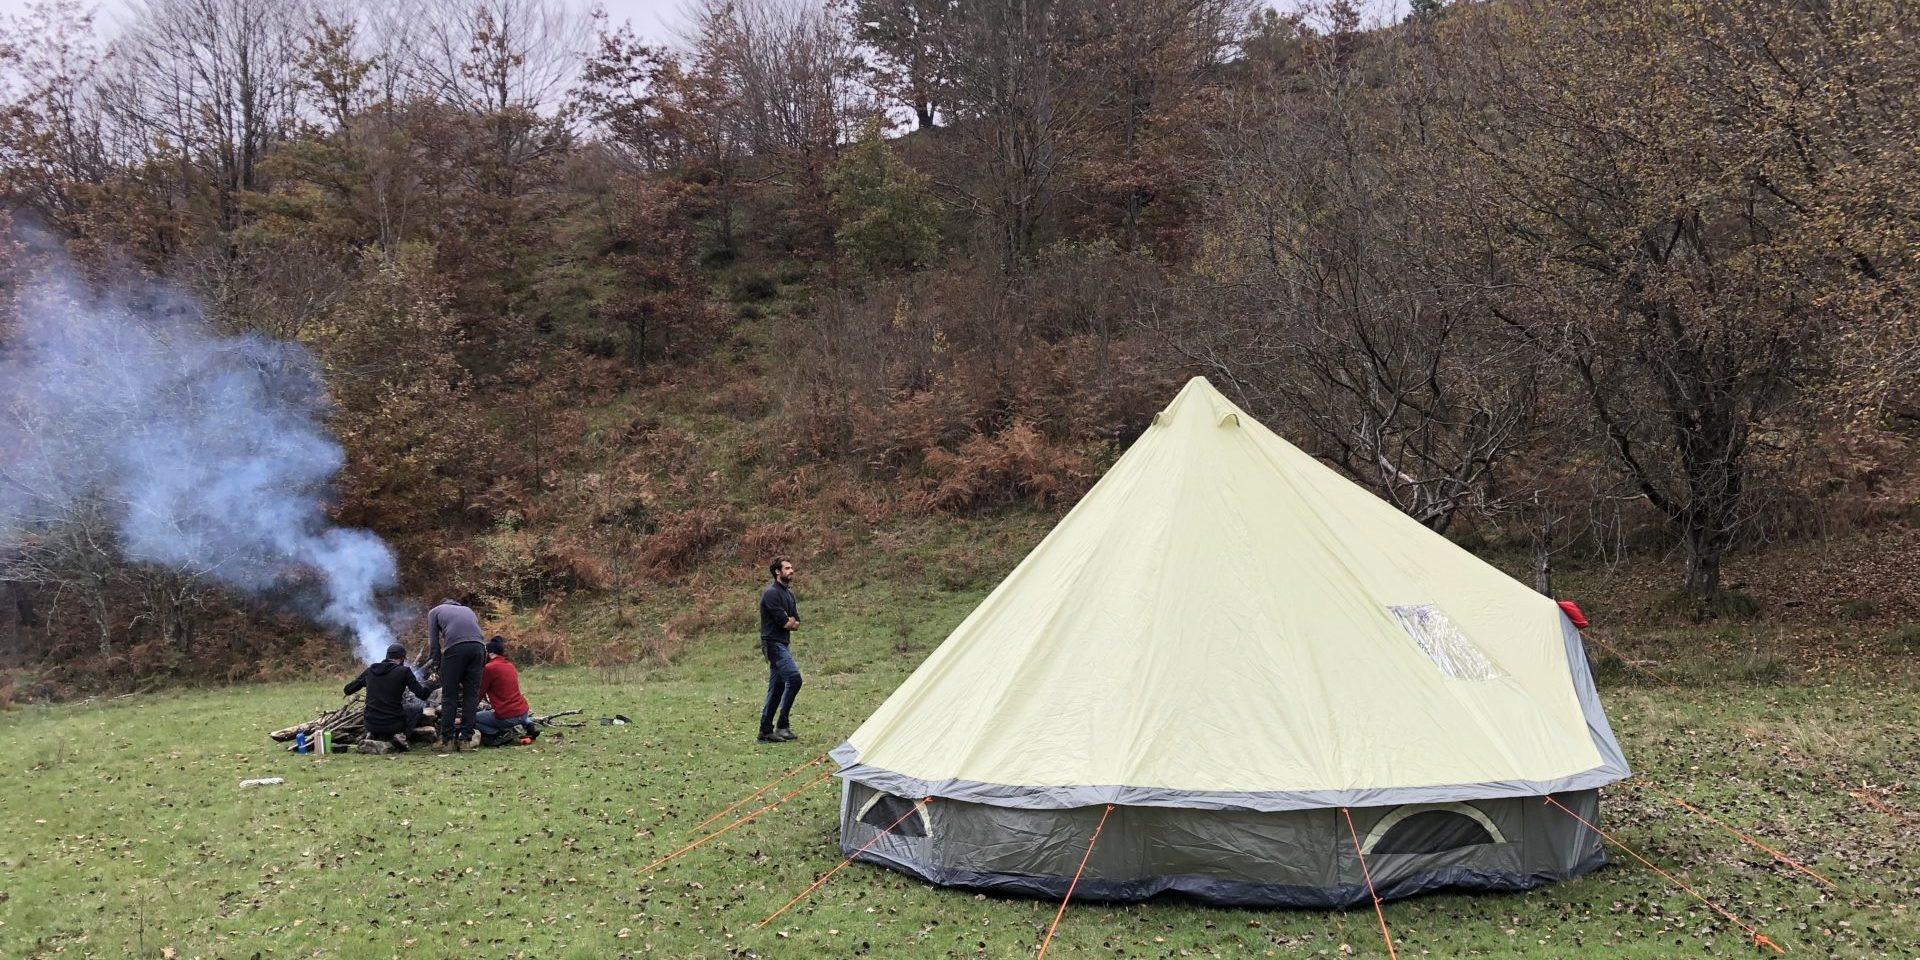 Campo Base Outdoor Education al Team Building e Corso di Sopravvivenza di Outdoor Portofino